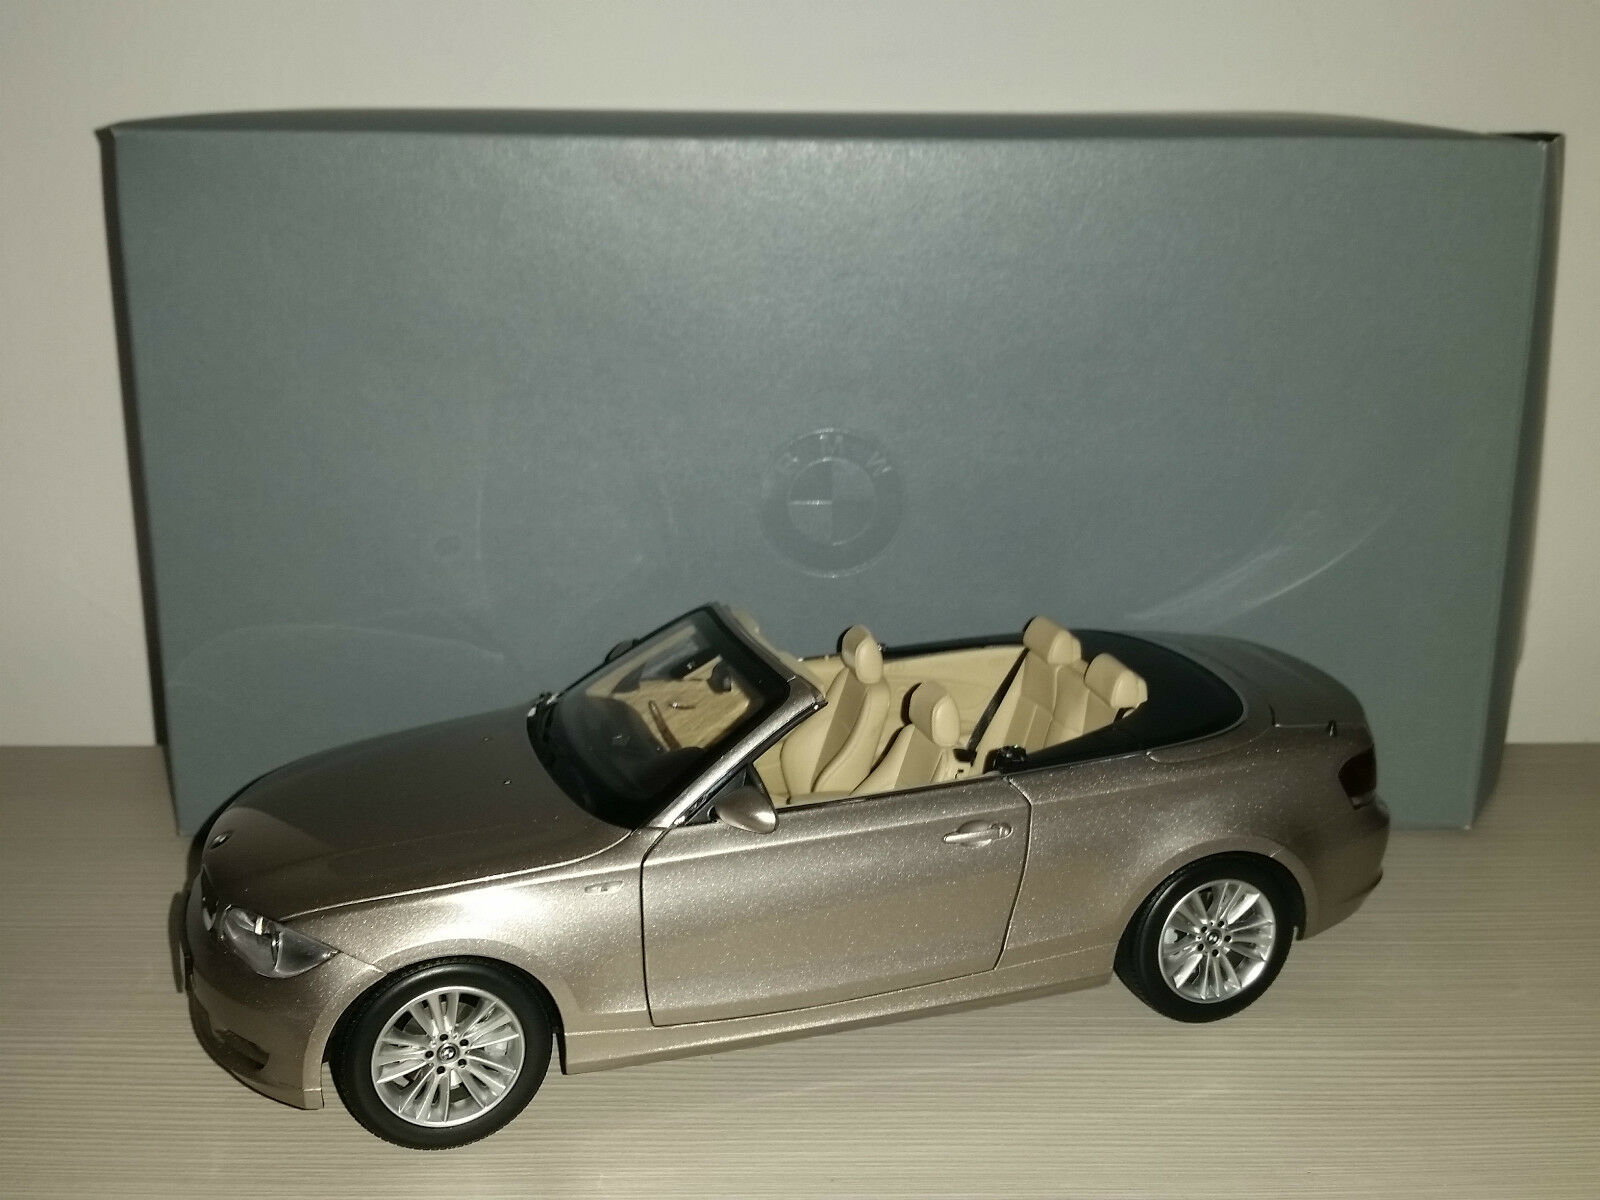 BMW 1 SERIE CONVERTIBLE KYOSHO SCALA 1:18